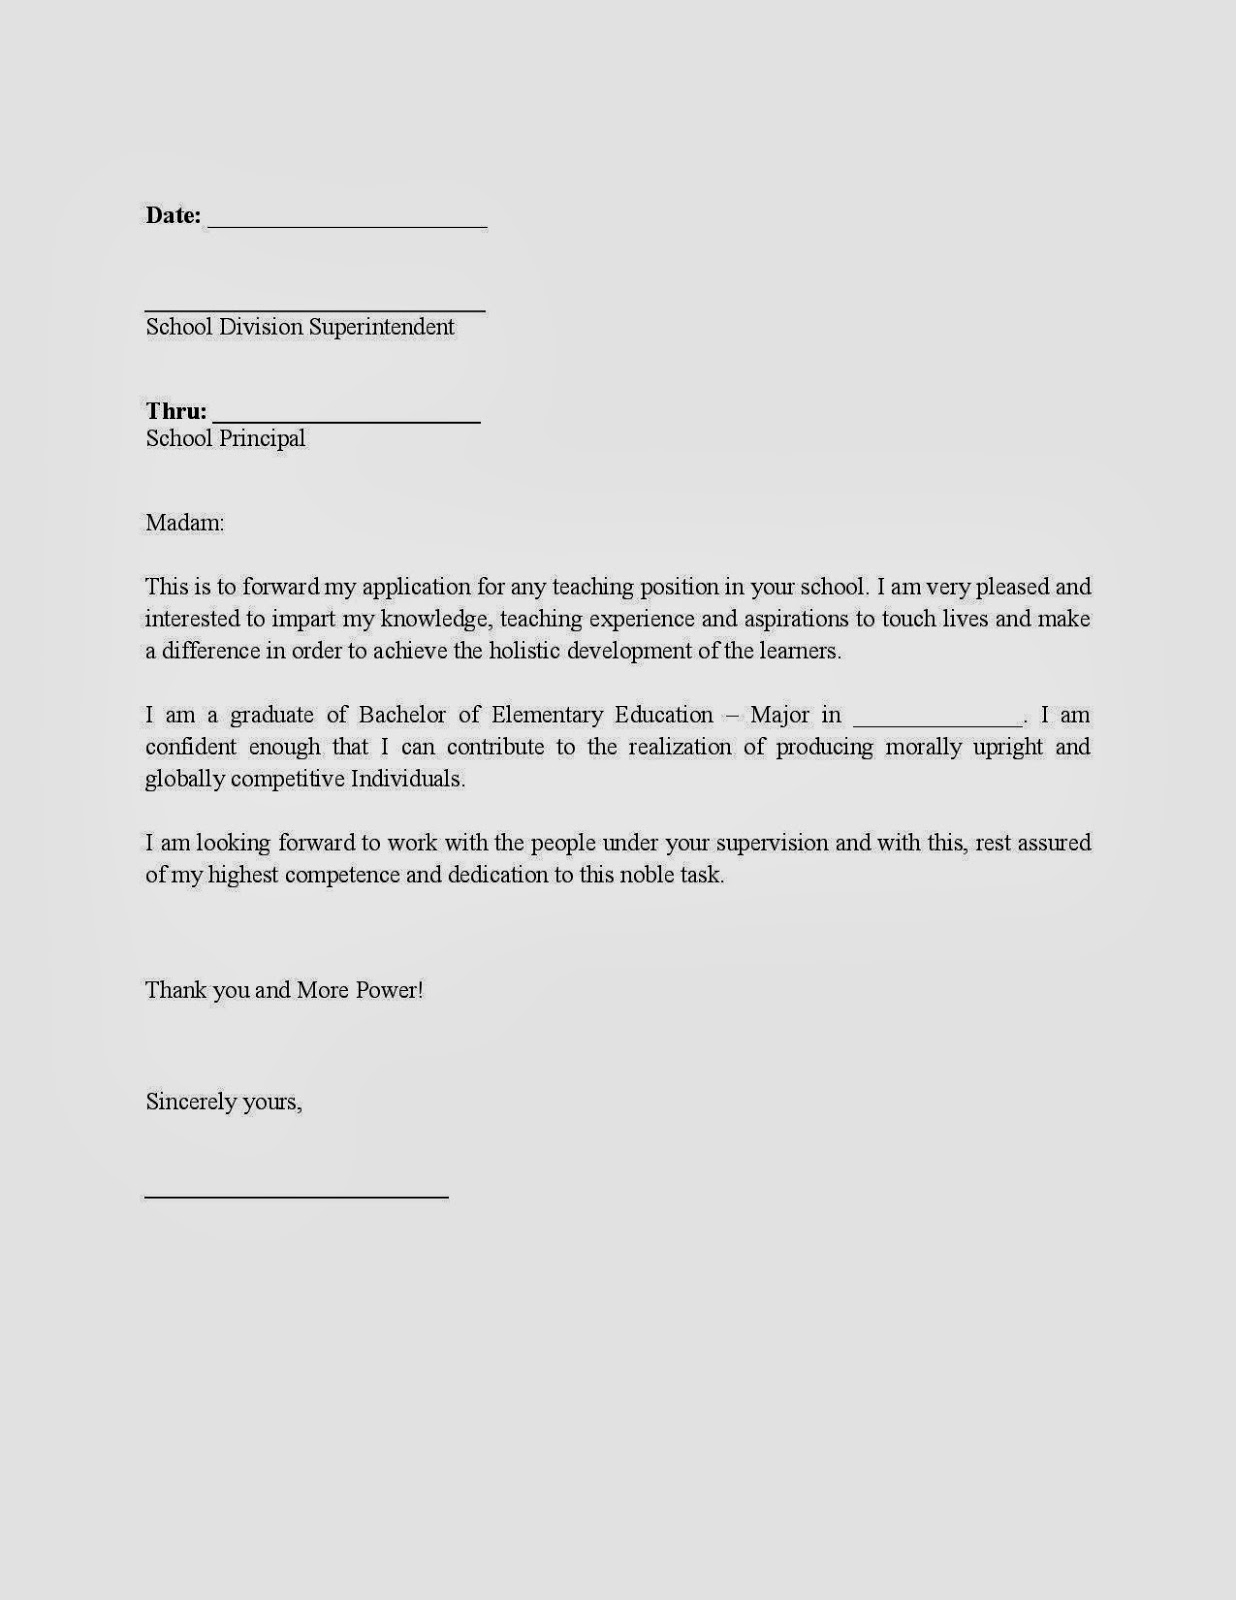 Job Application Letter Sample For Any Position